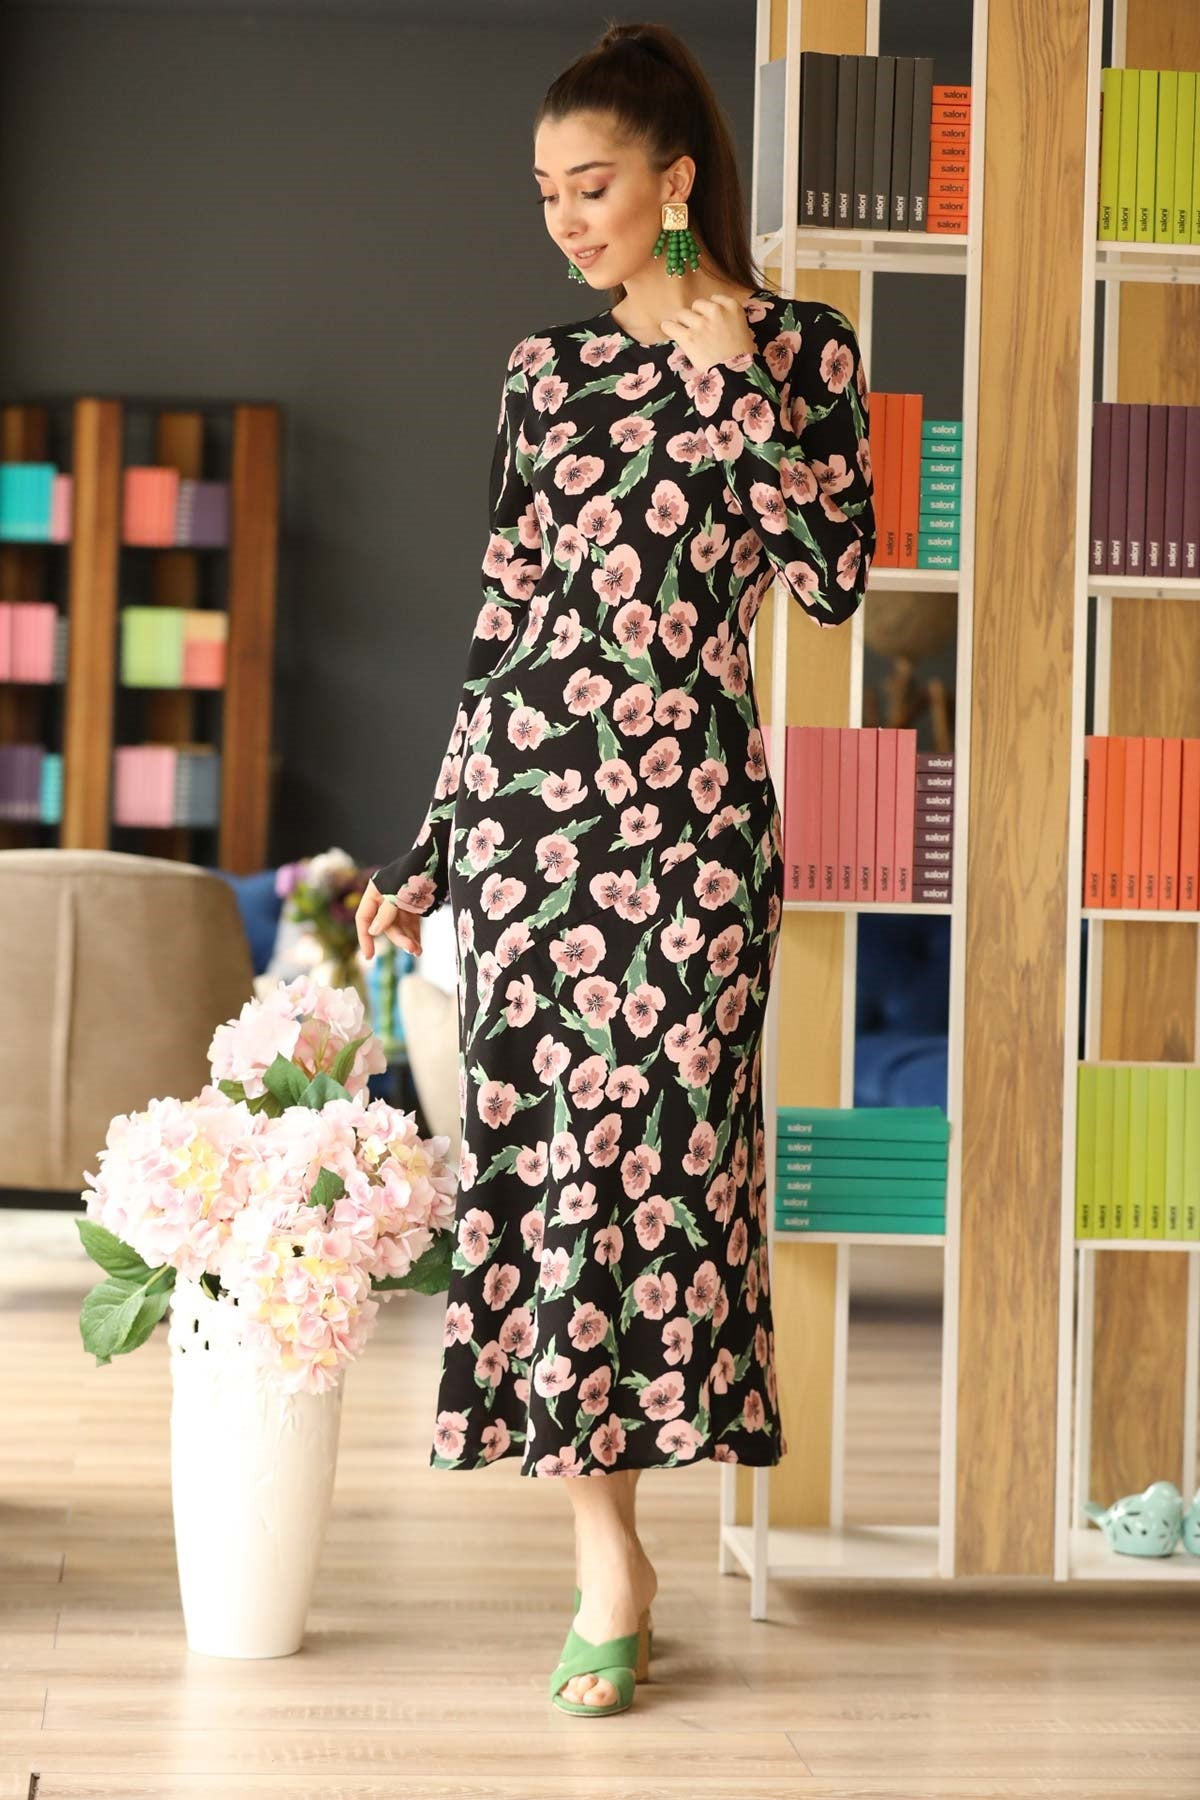 Women's Patterned Black Midi Dress